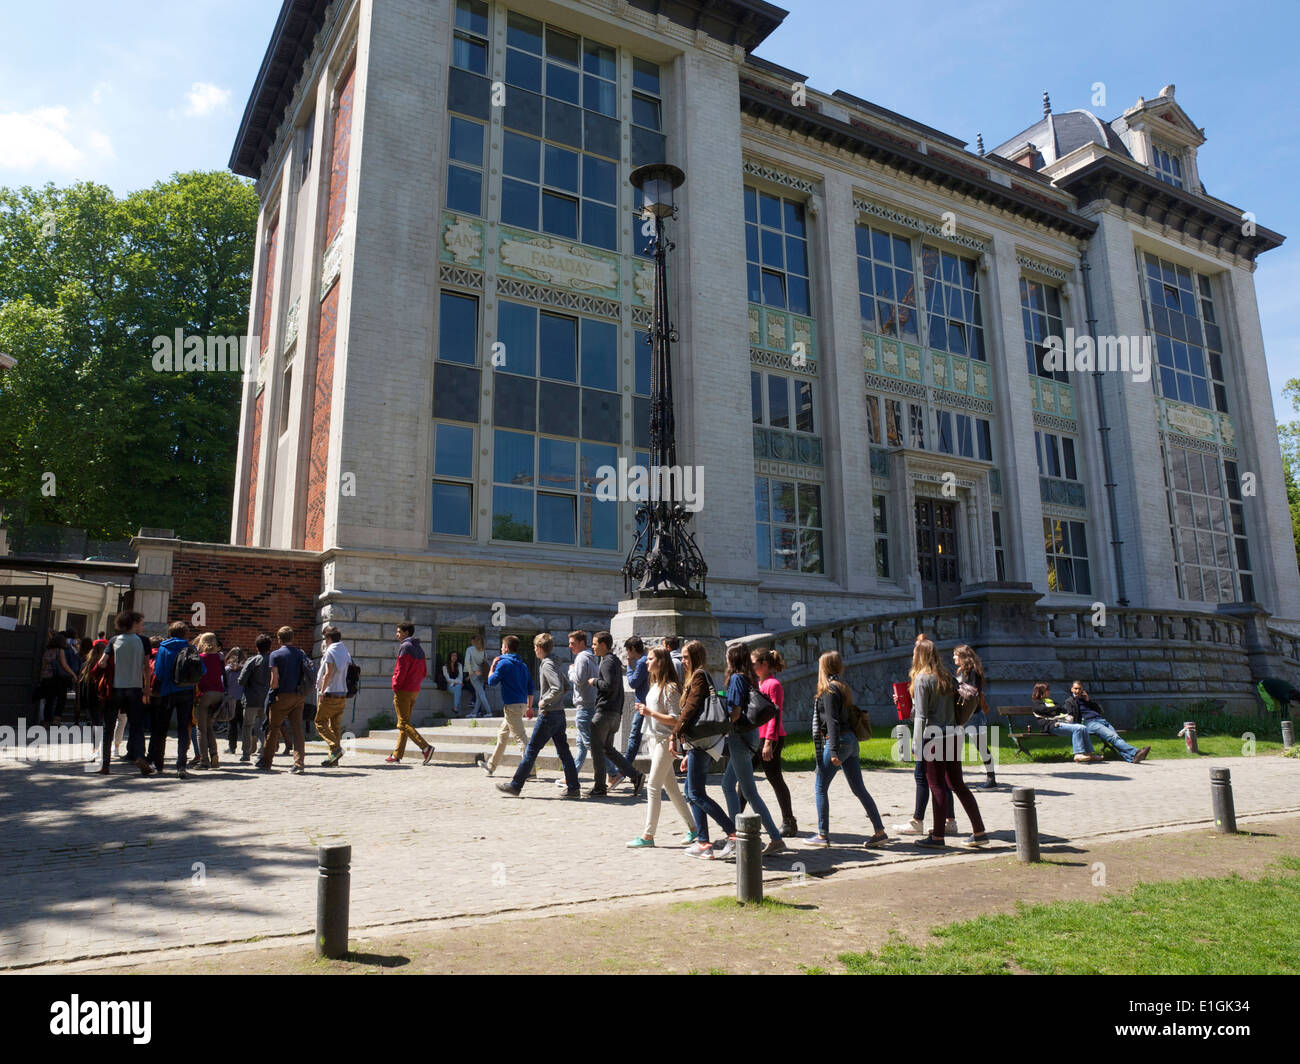 Kids returning to their school after spending the lunchbreak outdoors, Brussels, Belgium - Stock Image